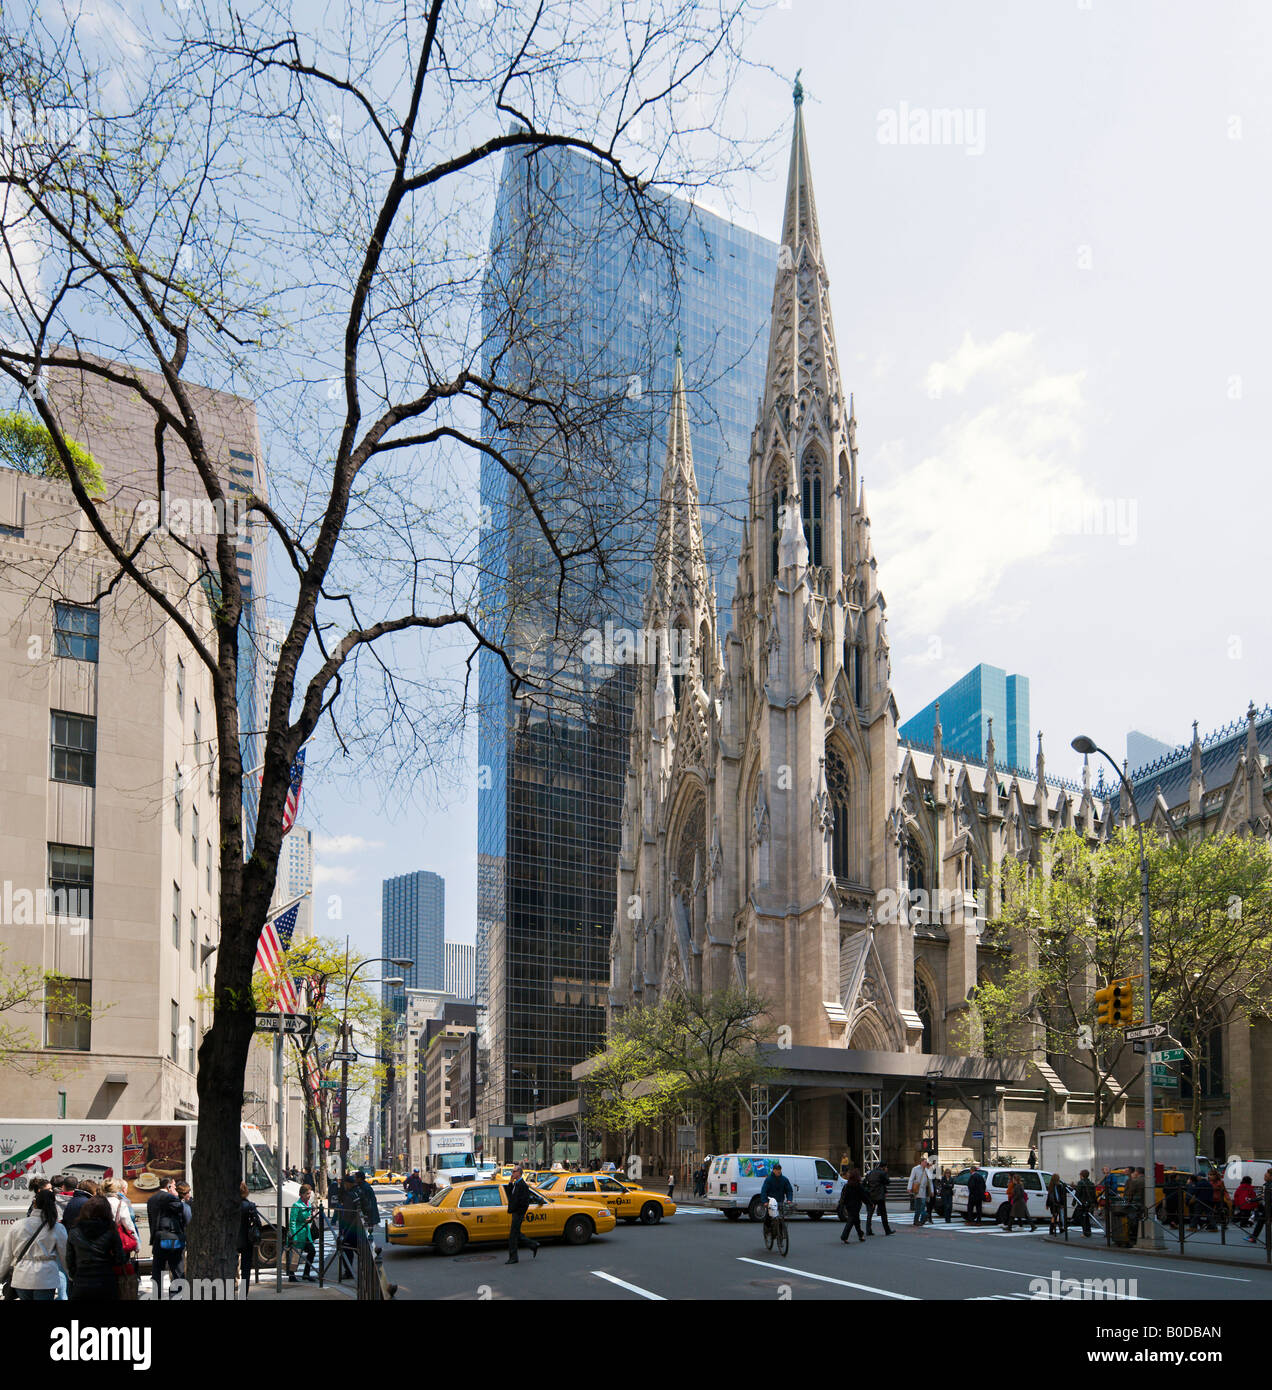 Midtown At Town Center: St Patrick's Cathedral And Olympic Tower, 5th Avenue